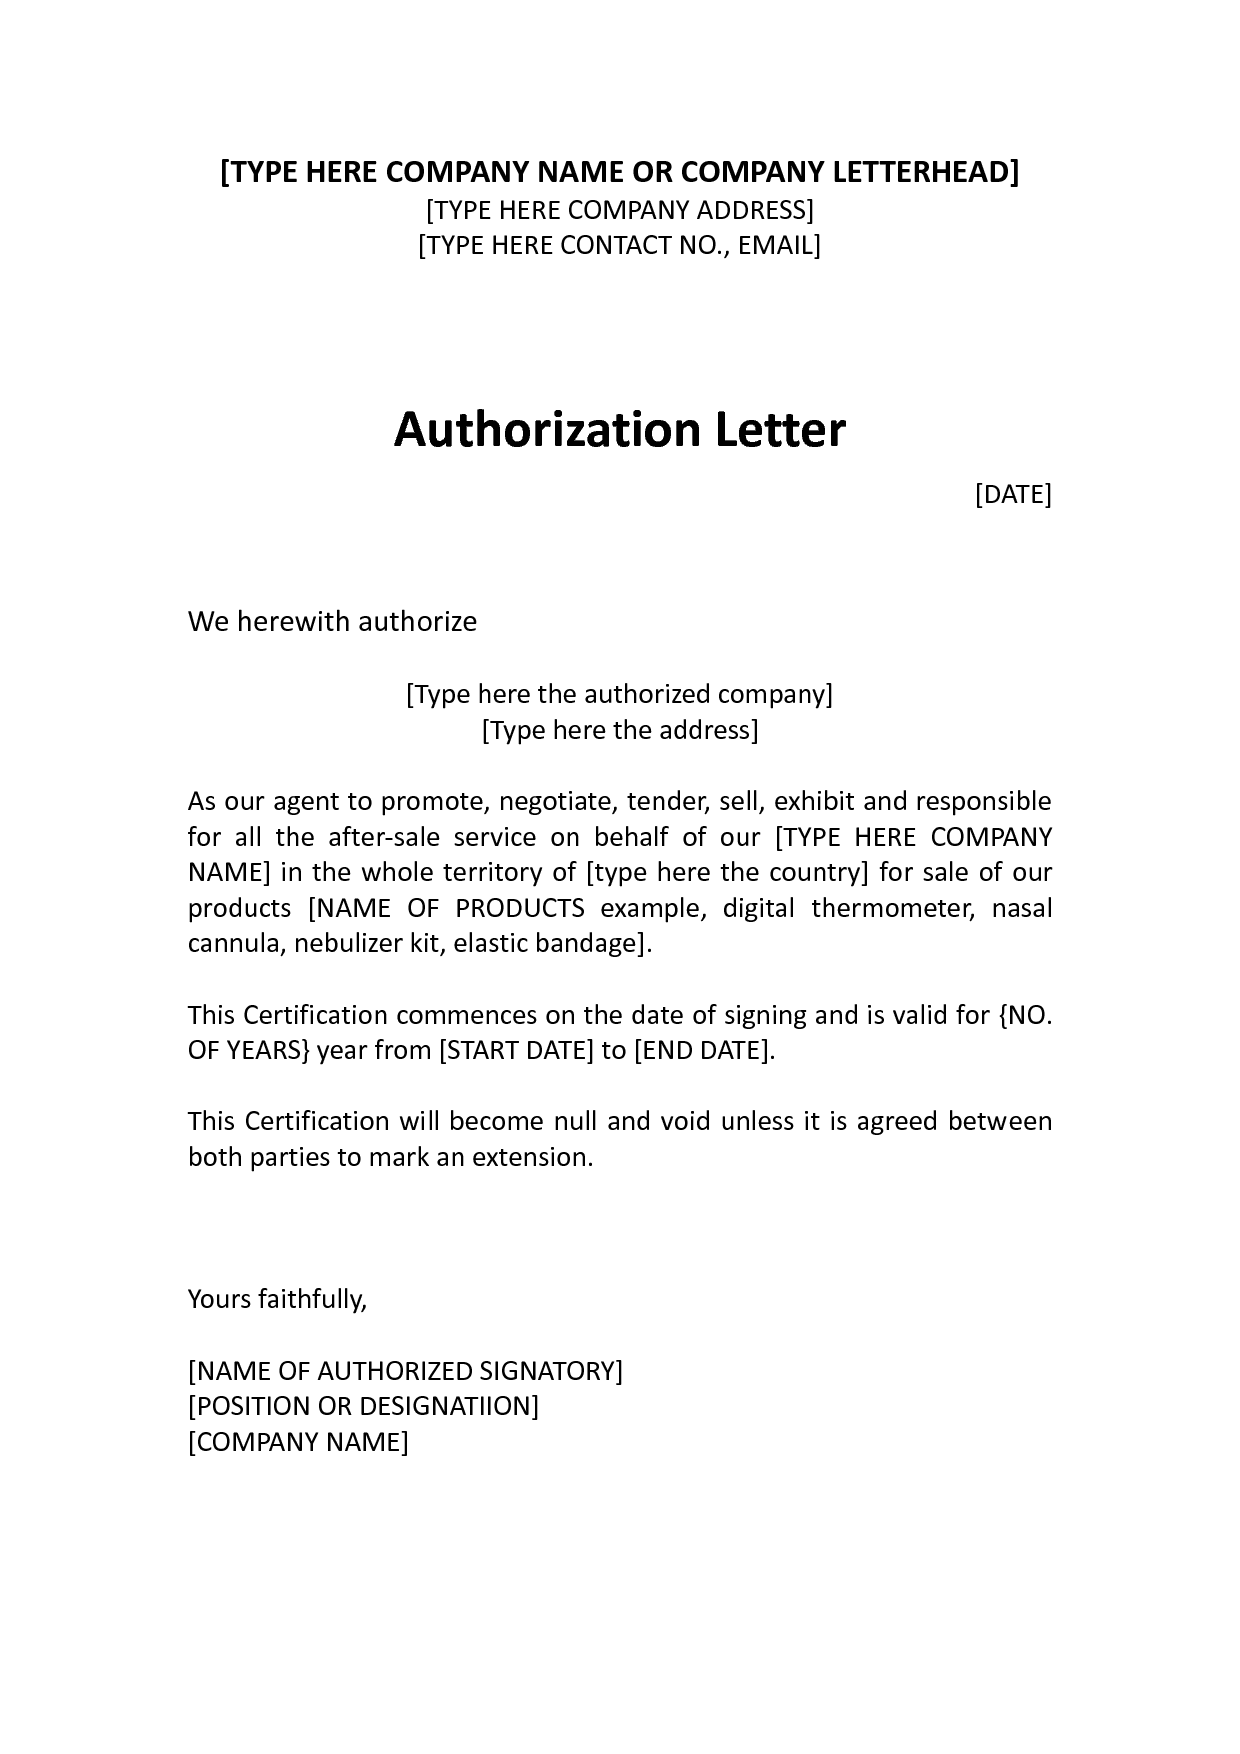 Authorization distributor letter sample distributor for Job salon distribution